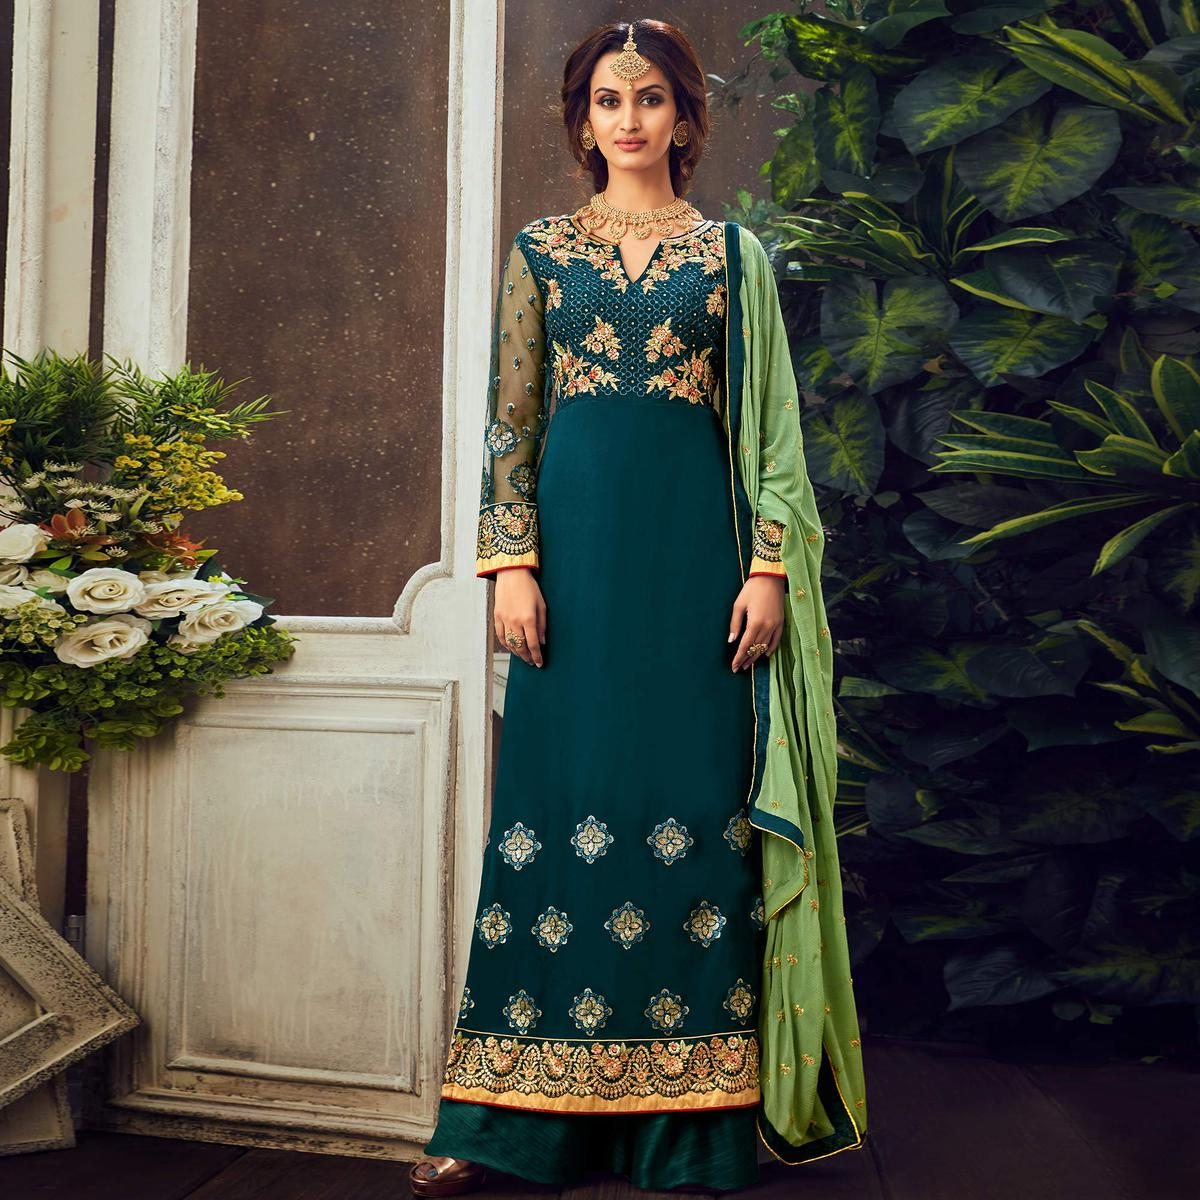 Teal Blue Festive Wear Floral Embroidered Pure Georgette Suit